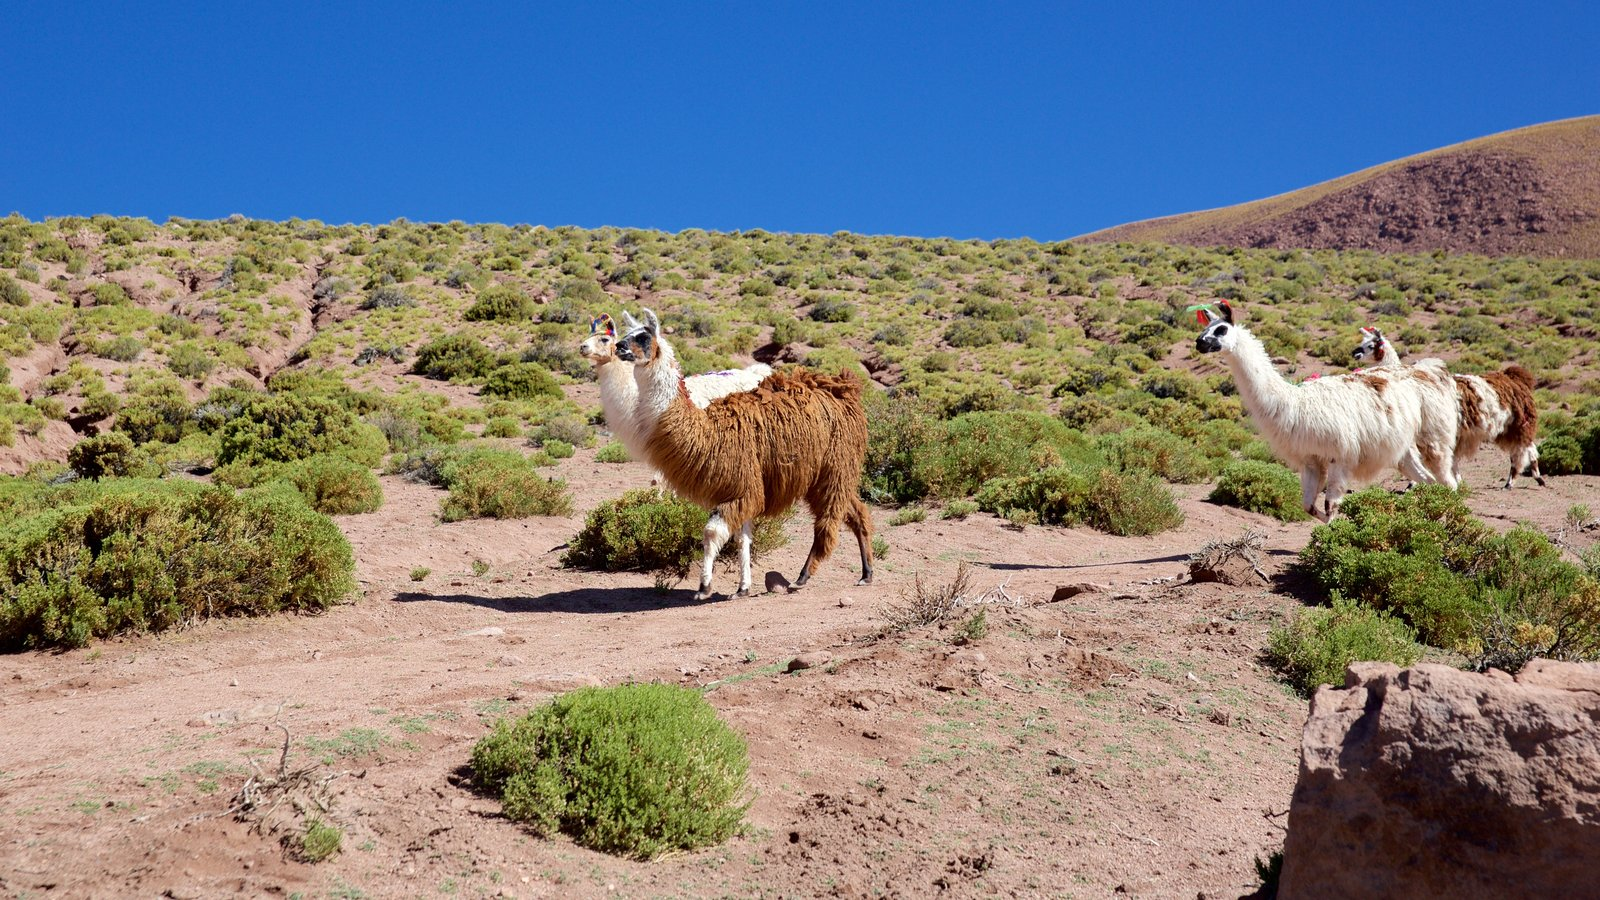 Machuca featuring tranquil scenes and cuddly or friendly animals